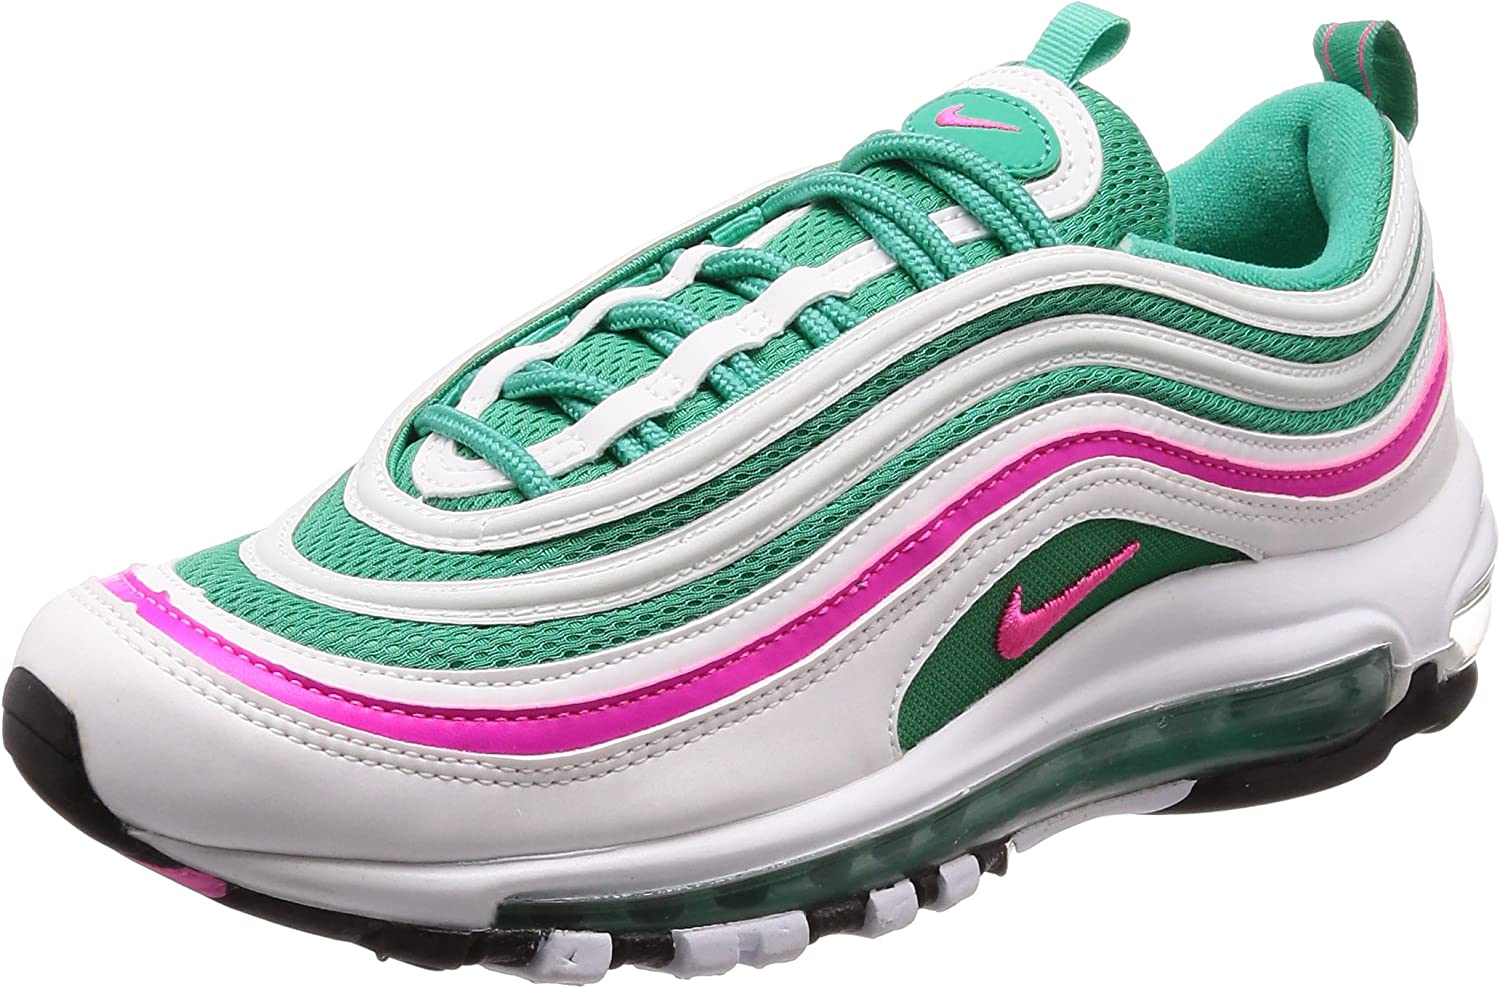 Nike AIR Max 97 'South Beach' 921826 102 Size 8